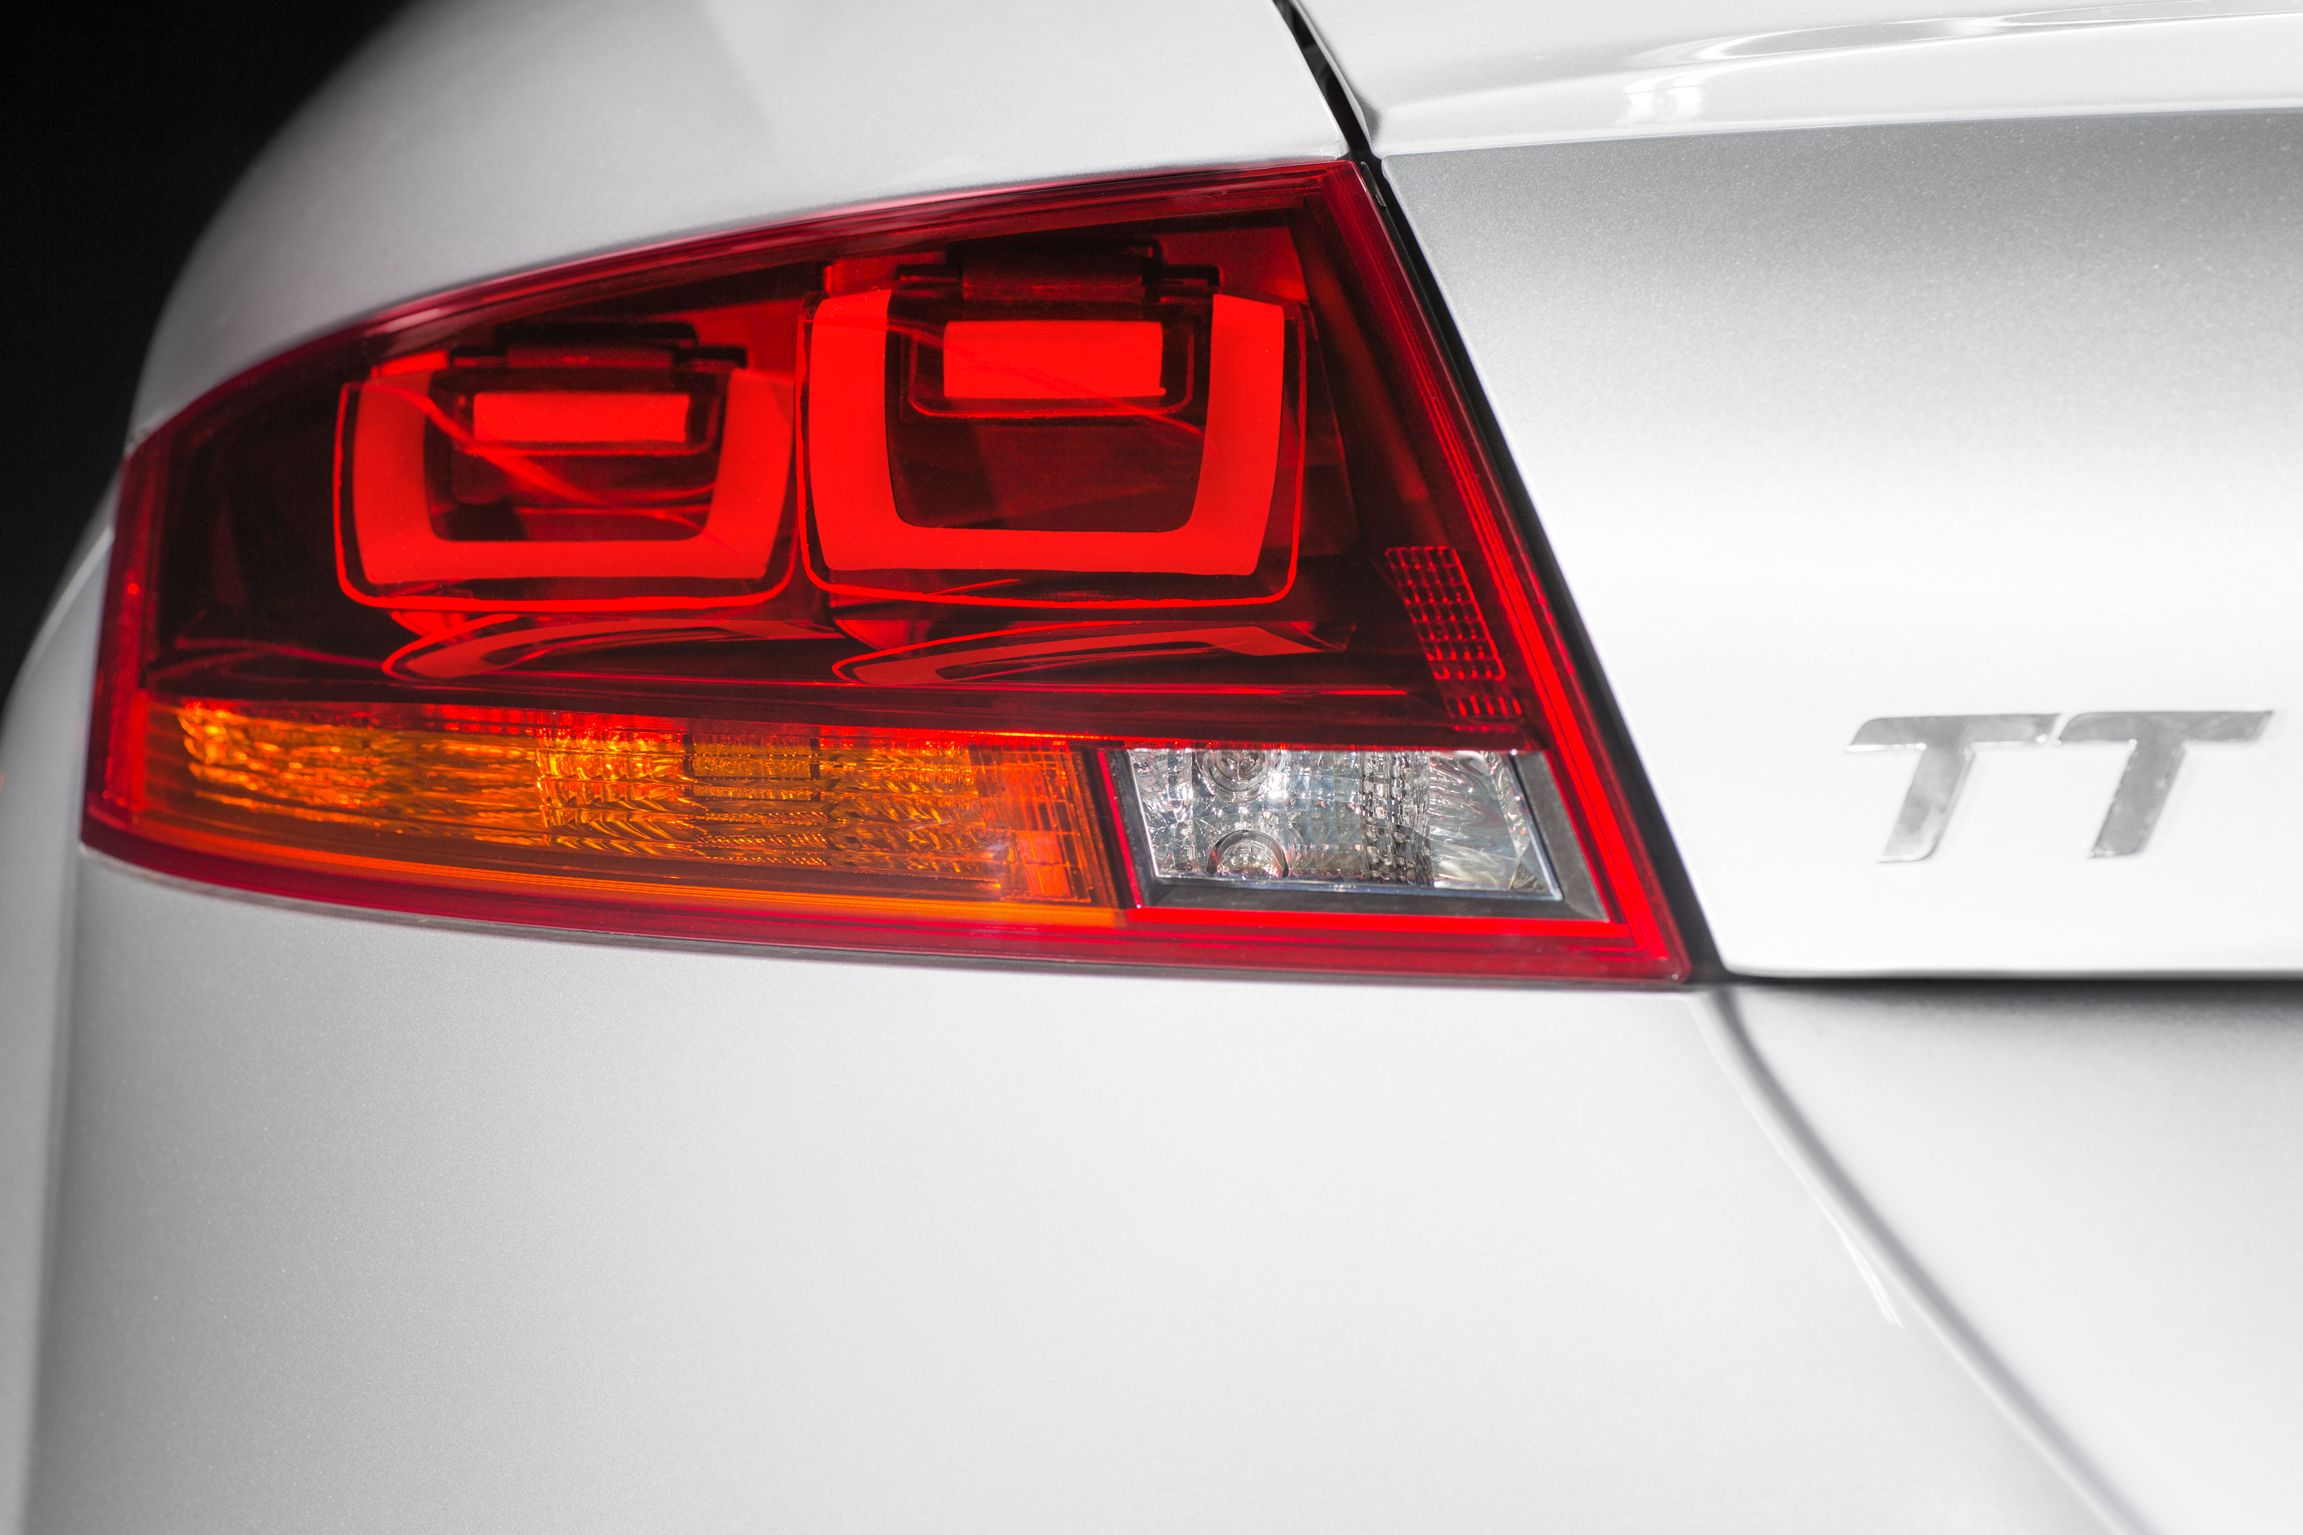 20 best OLED-Beleuchtung images on Pinterest | Lights, Audi and ...